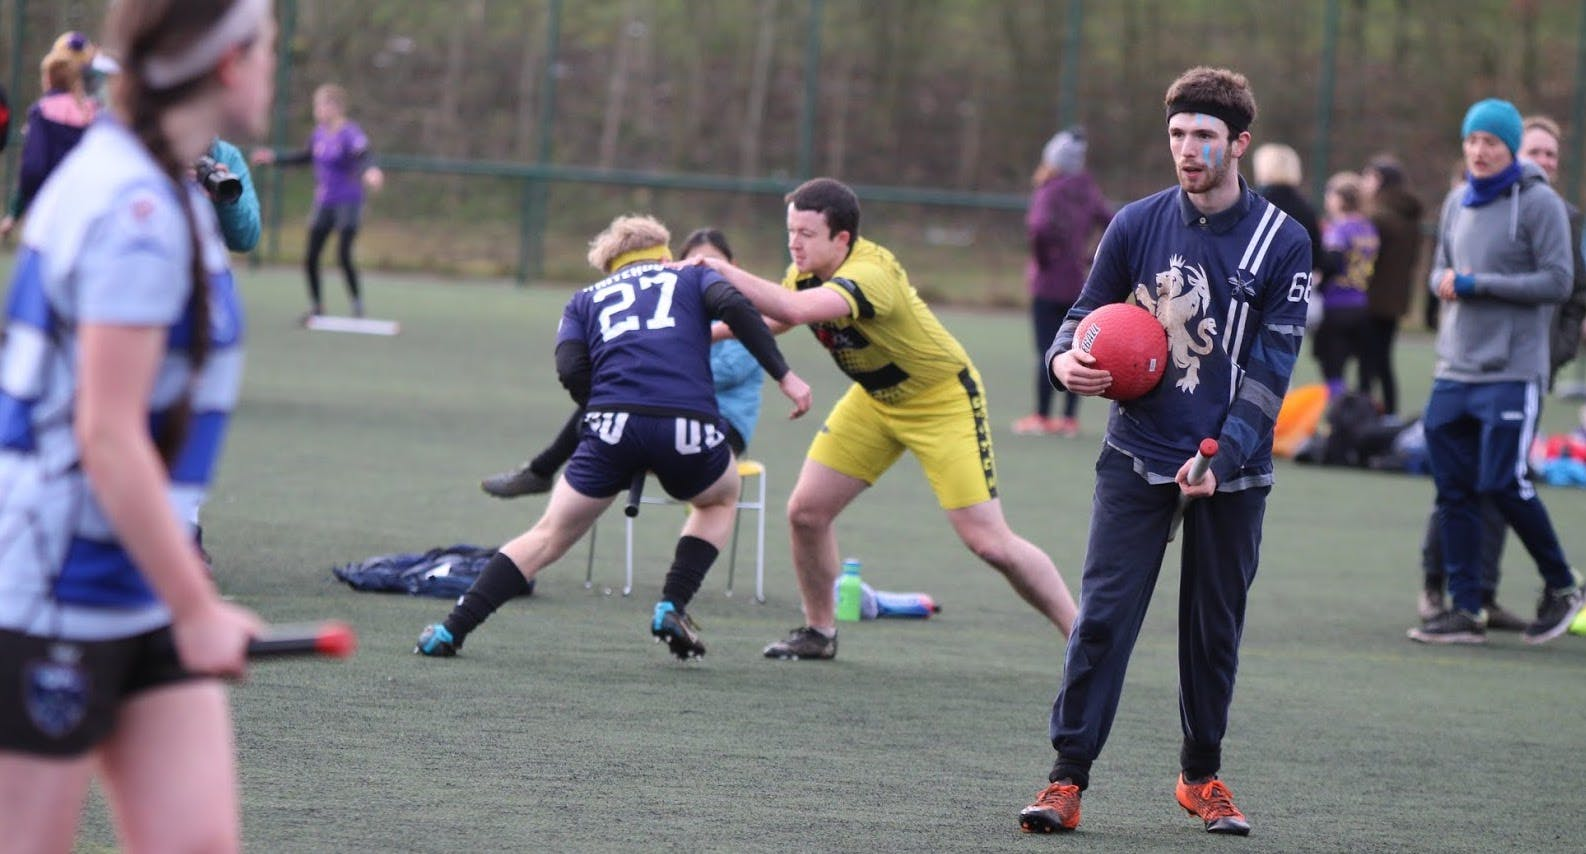 A player and a snitch wrestle while a beater guards them